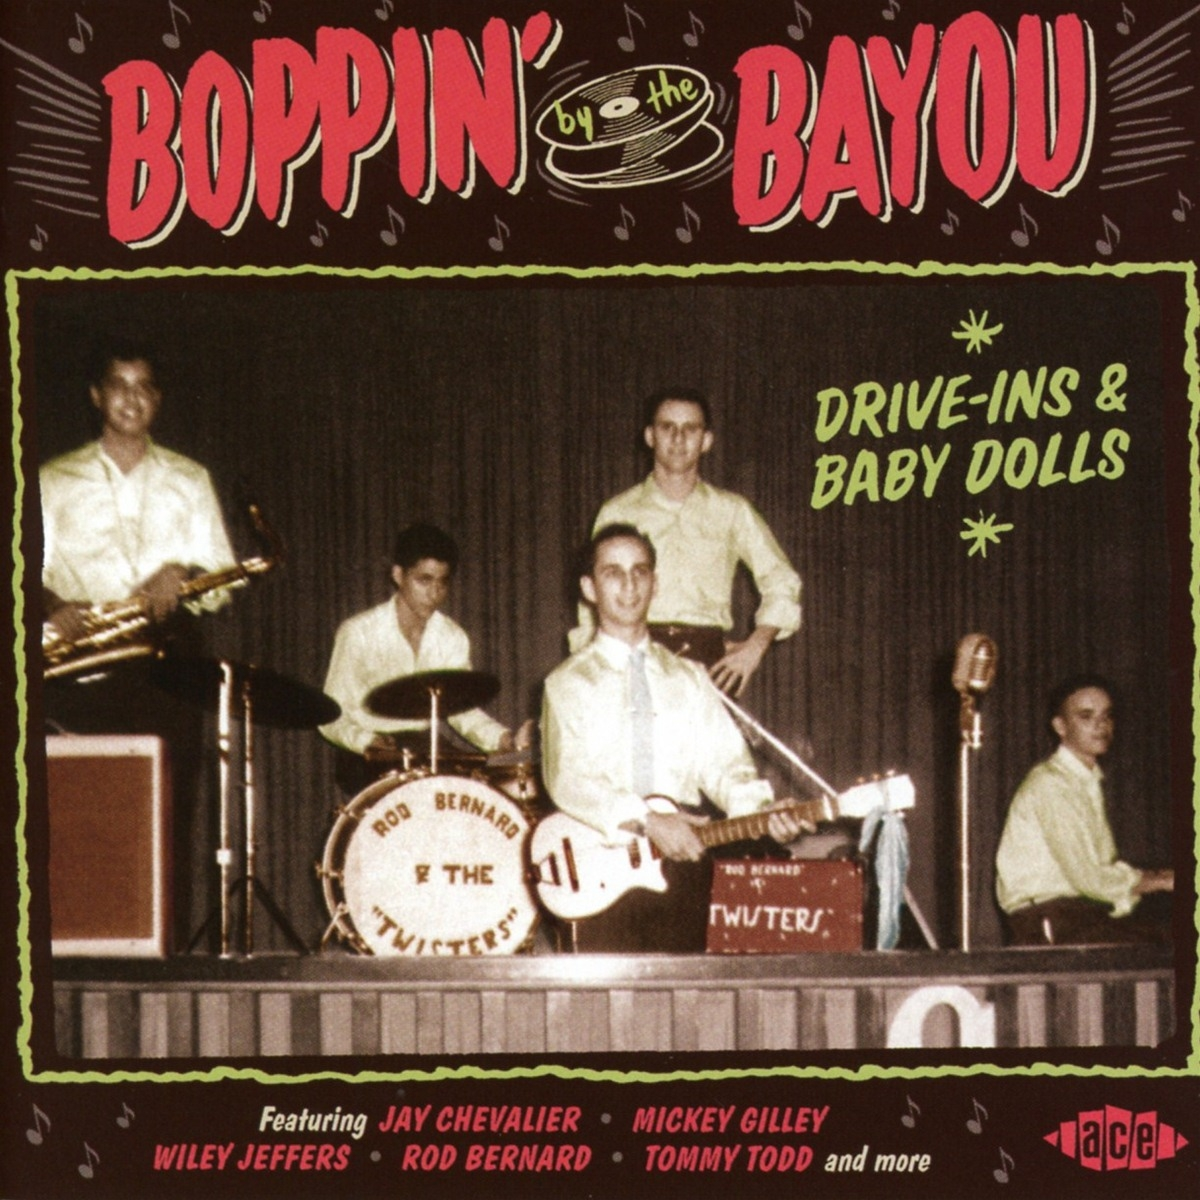 Various Artists. Boppin By The Bayou - Drive-Ins & Baby Dolls